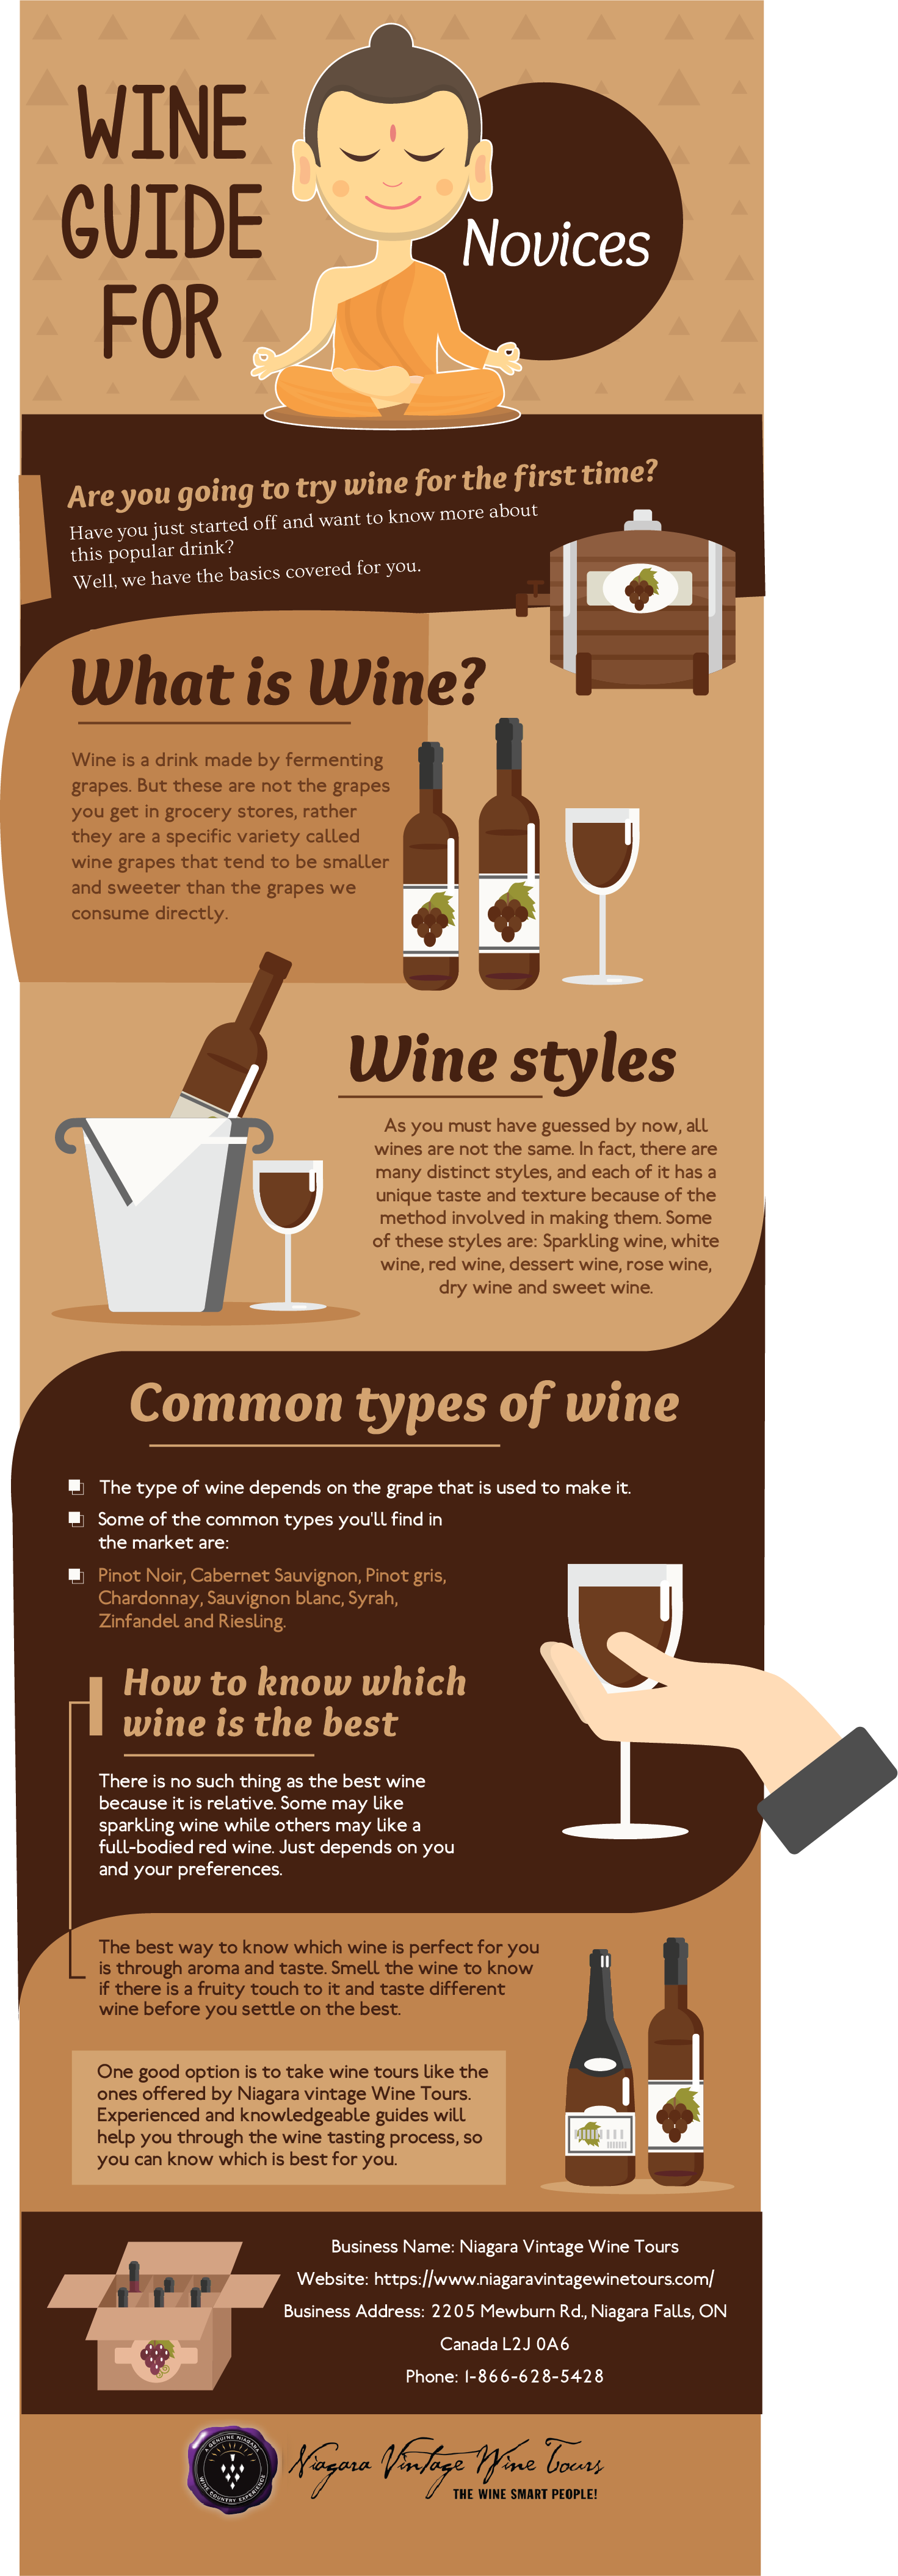 Wine Guide For Novices